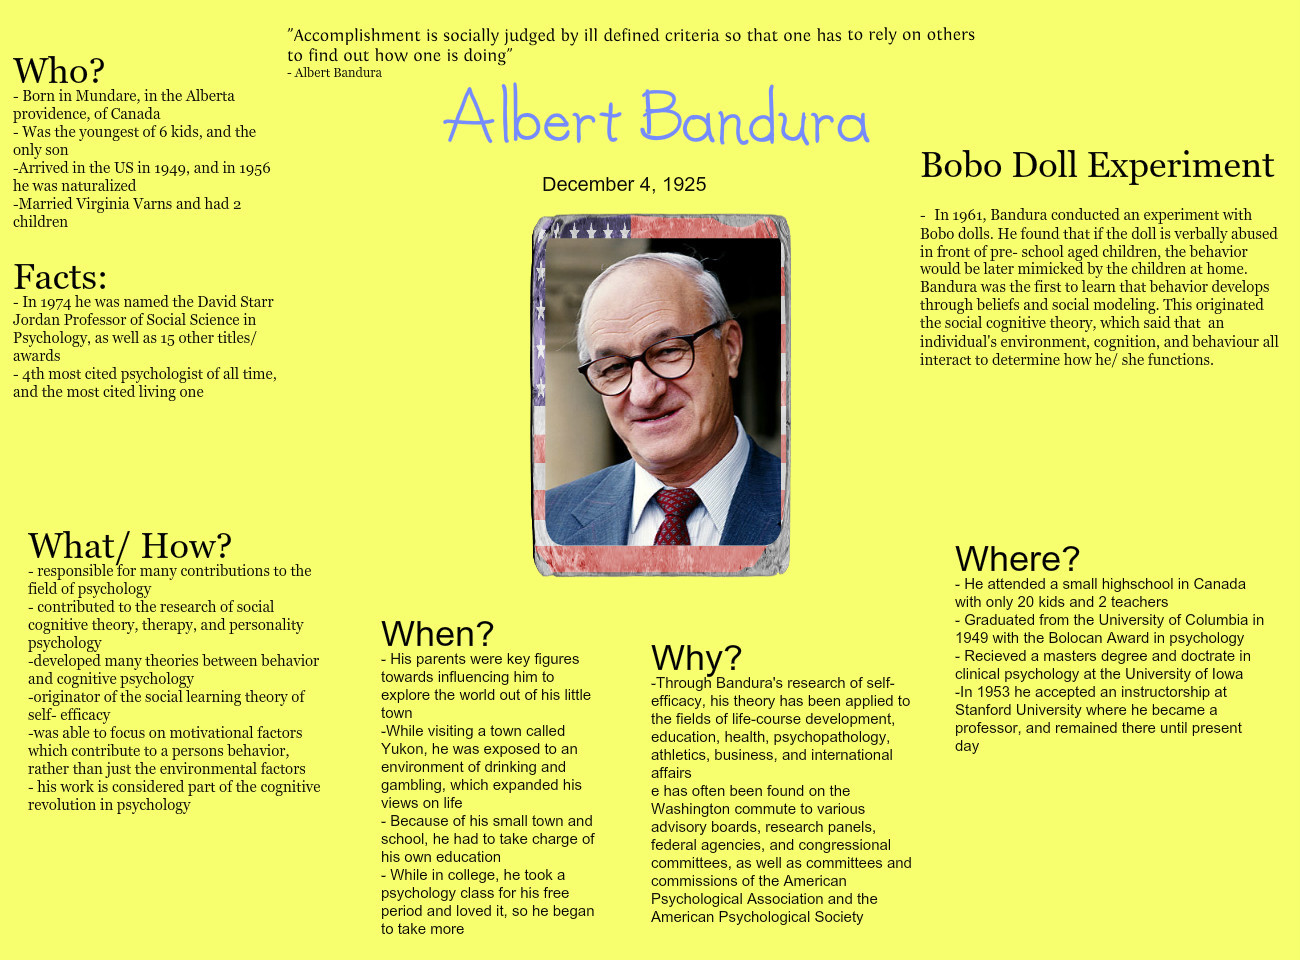 essays social learning theory of albert bandura Social learning theory custom essay sample derived from albert bandura's work, the social learning theory states that people usually learn within a social.